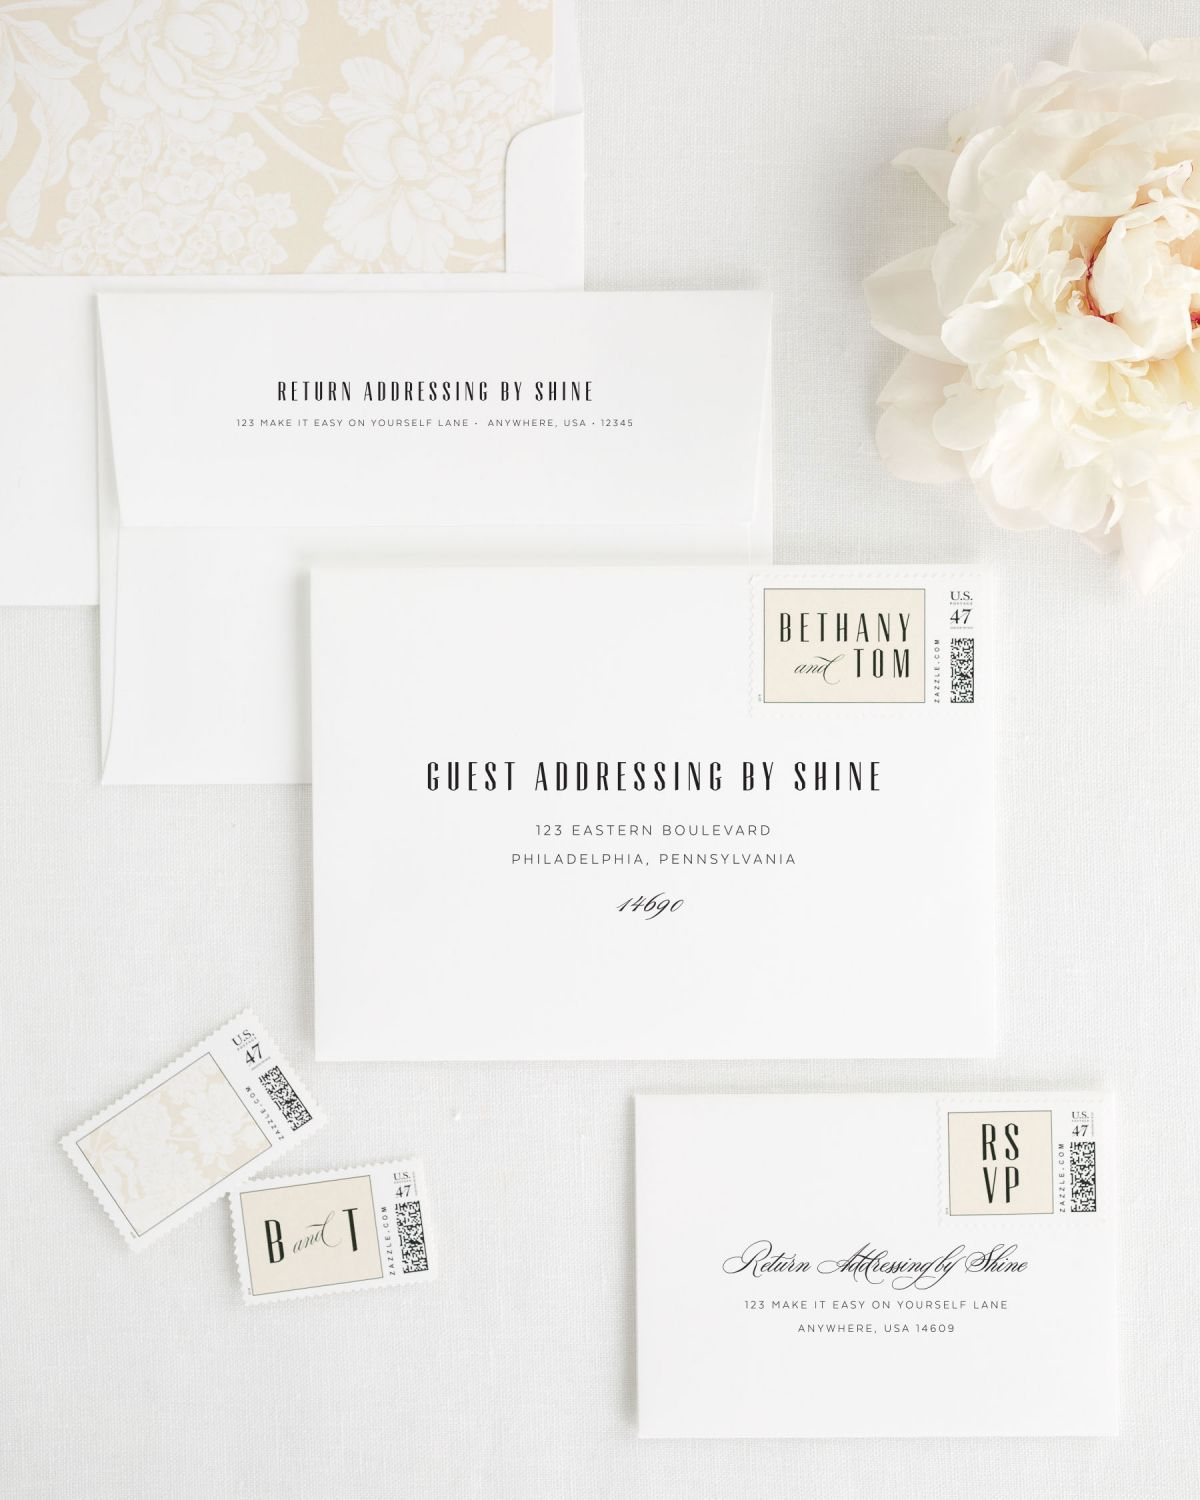 Modern Wedding Envelopes with Guest Addressing